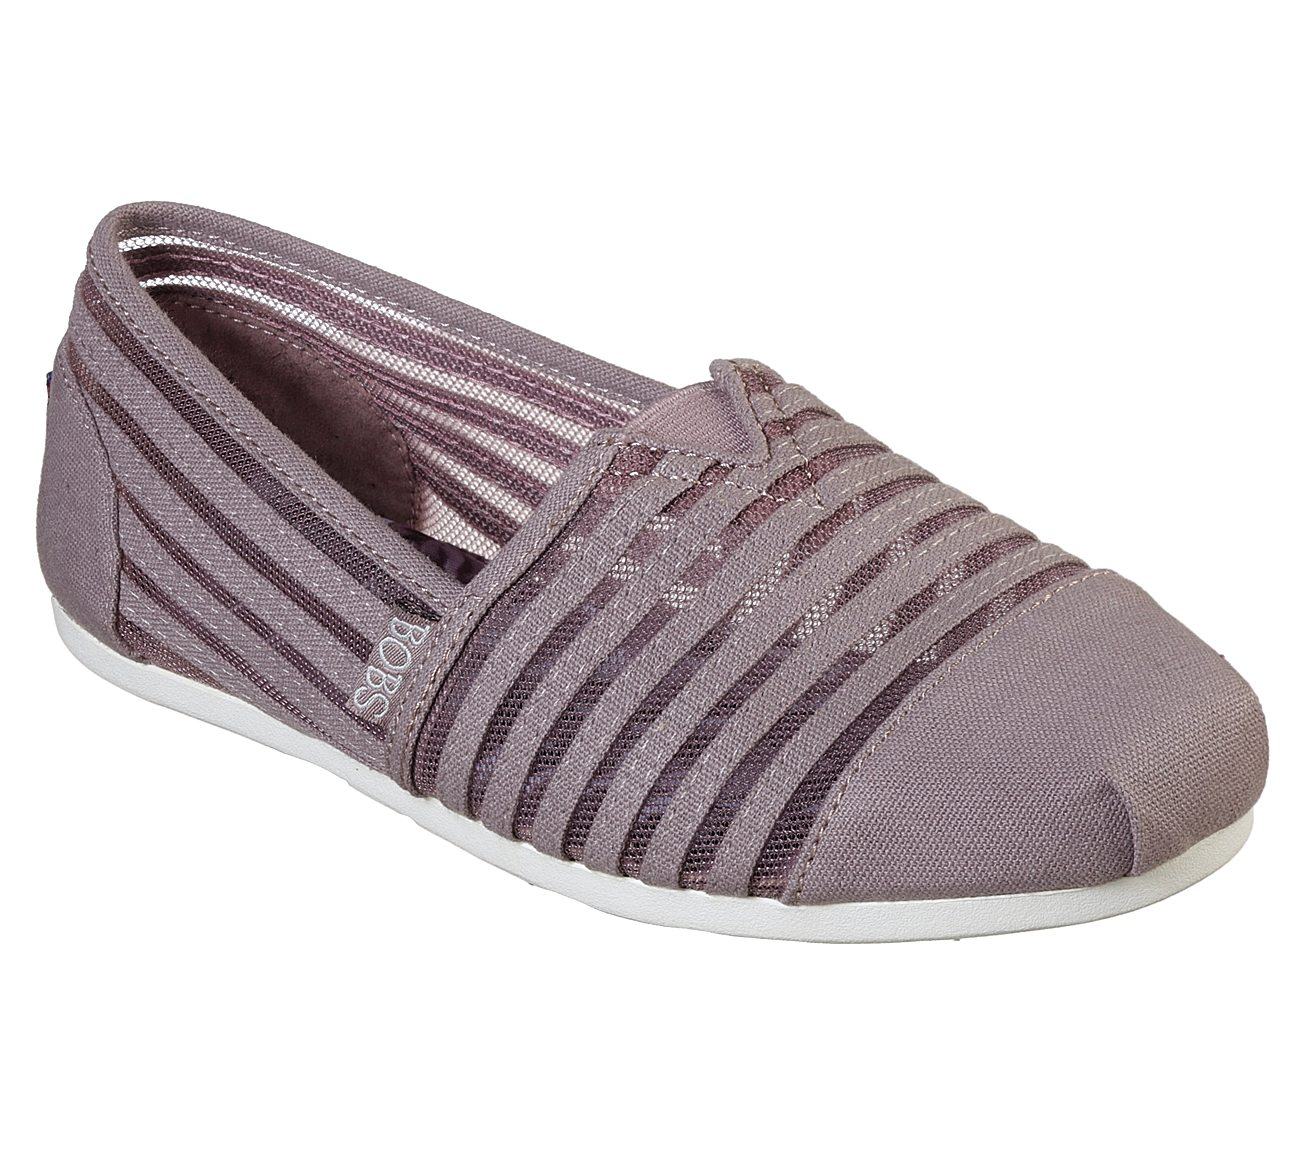 e28077ad3b Buy SKECHERS Bobs Plush - Adorbs BOBS Shoes only  42.00